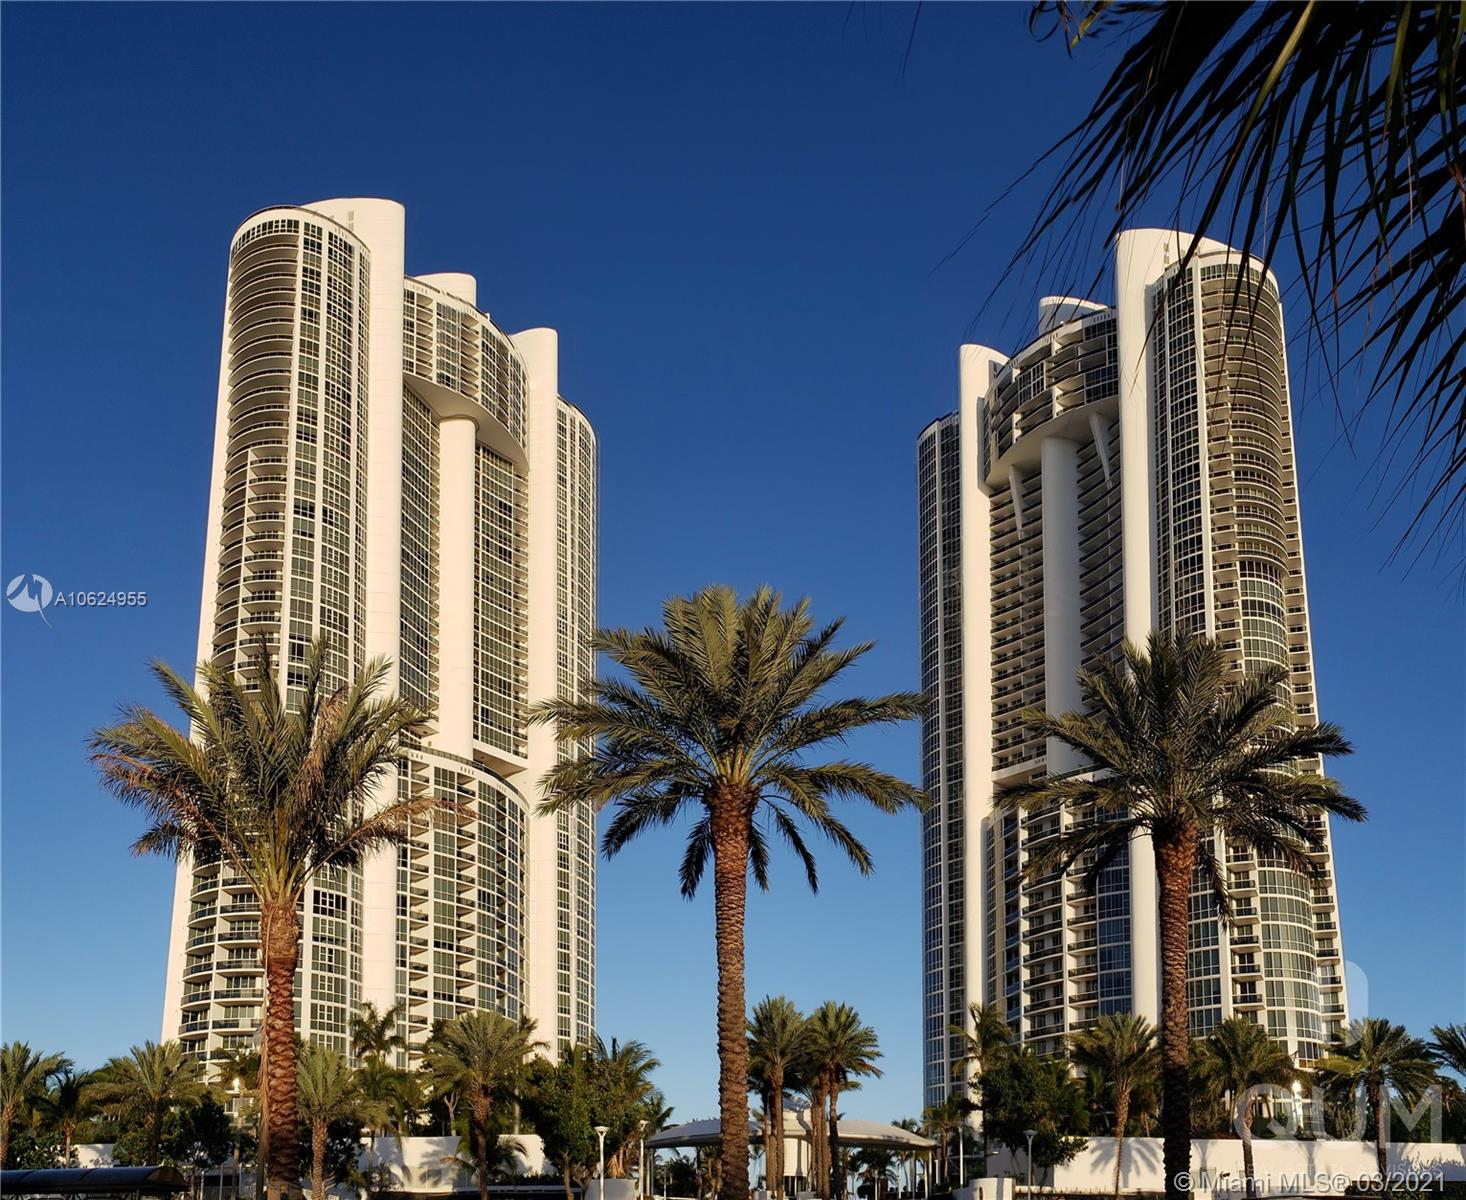 Amazing opportunity !!! BREATHTAKING OCEAN VIEW FROM EVERY ROOM!!! Magnificent high floor unit at TRUMP ROYALE (PRIME OCEANFRONT LOCATION WITH DIRECT BEACH ACCESS) in the heart of SUNNY ISLES BEACH. Floor to ceiling windows, automated blinds, open kitchen with top of the line European appliances (double ovens, built-in coffee maker, microwave and more). This unit offers BOTH SPECTACULAR OCEAN AND INTRACOASTAL /SKYLINE VIEWS. 5 STAR RESORT STYLE AMENITIES including full beach and pool services, state of the art fitness center, spa, sauna, yoga room, activity classes, swimming pools, tennis court, billiard, 24 hrs concierge service, valet parking + access to trump hotel amenities and restaurants. Close to Aventura and Bal Harbor mall . PERFECT FAMILY VACATION HOME and Investment!